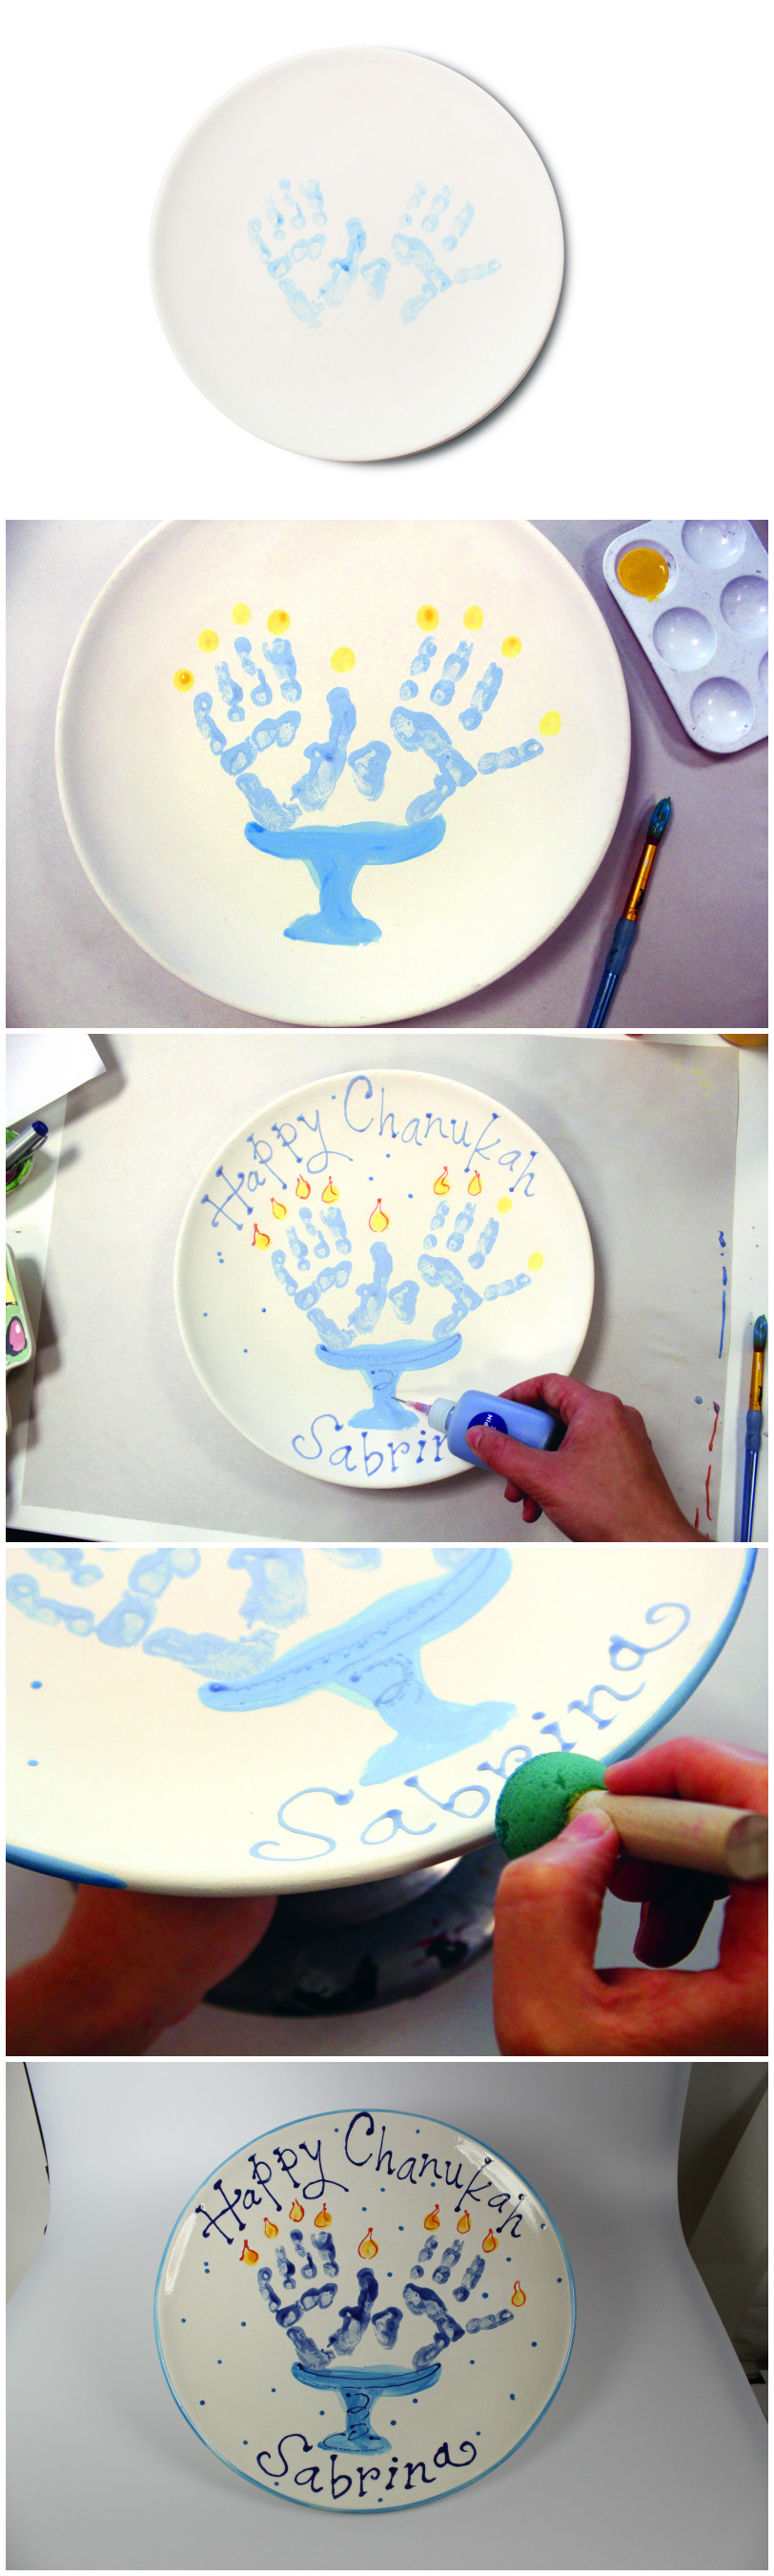 Great and Creative way to decorate a plate - full instructions at all our Make Meaning locations!